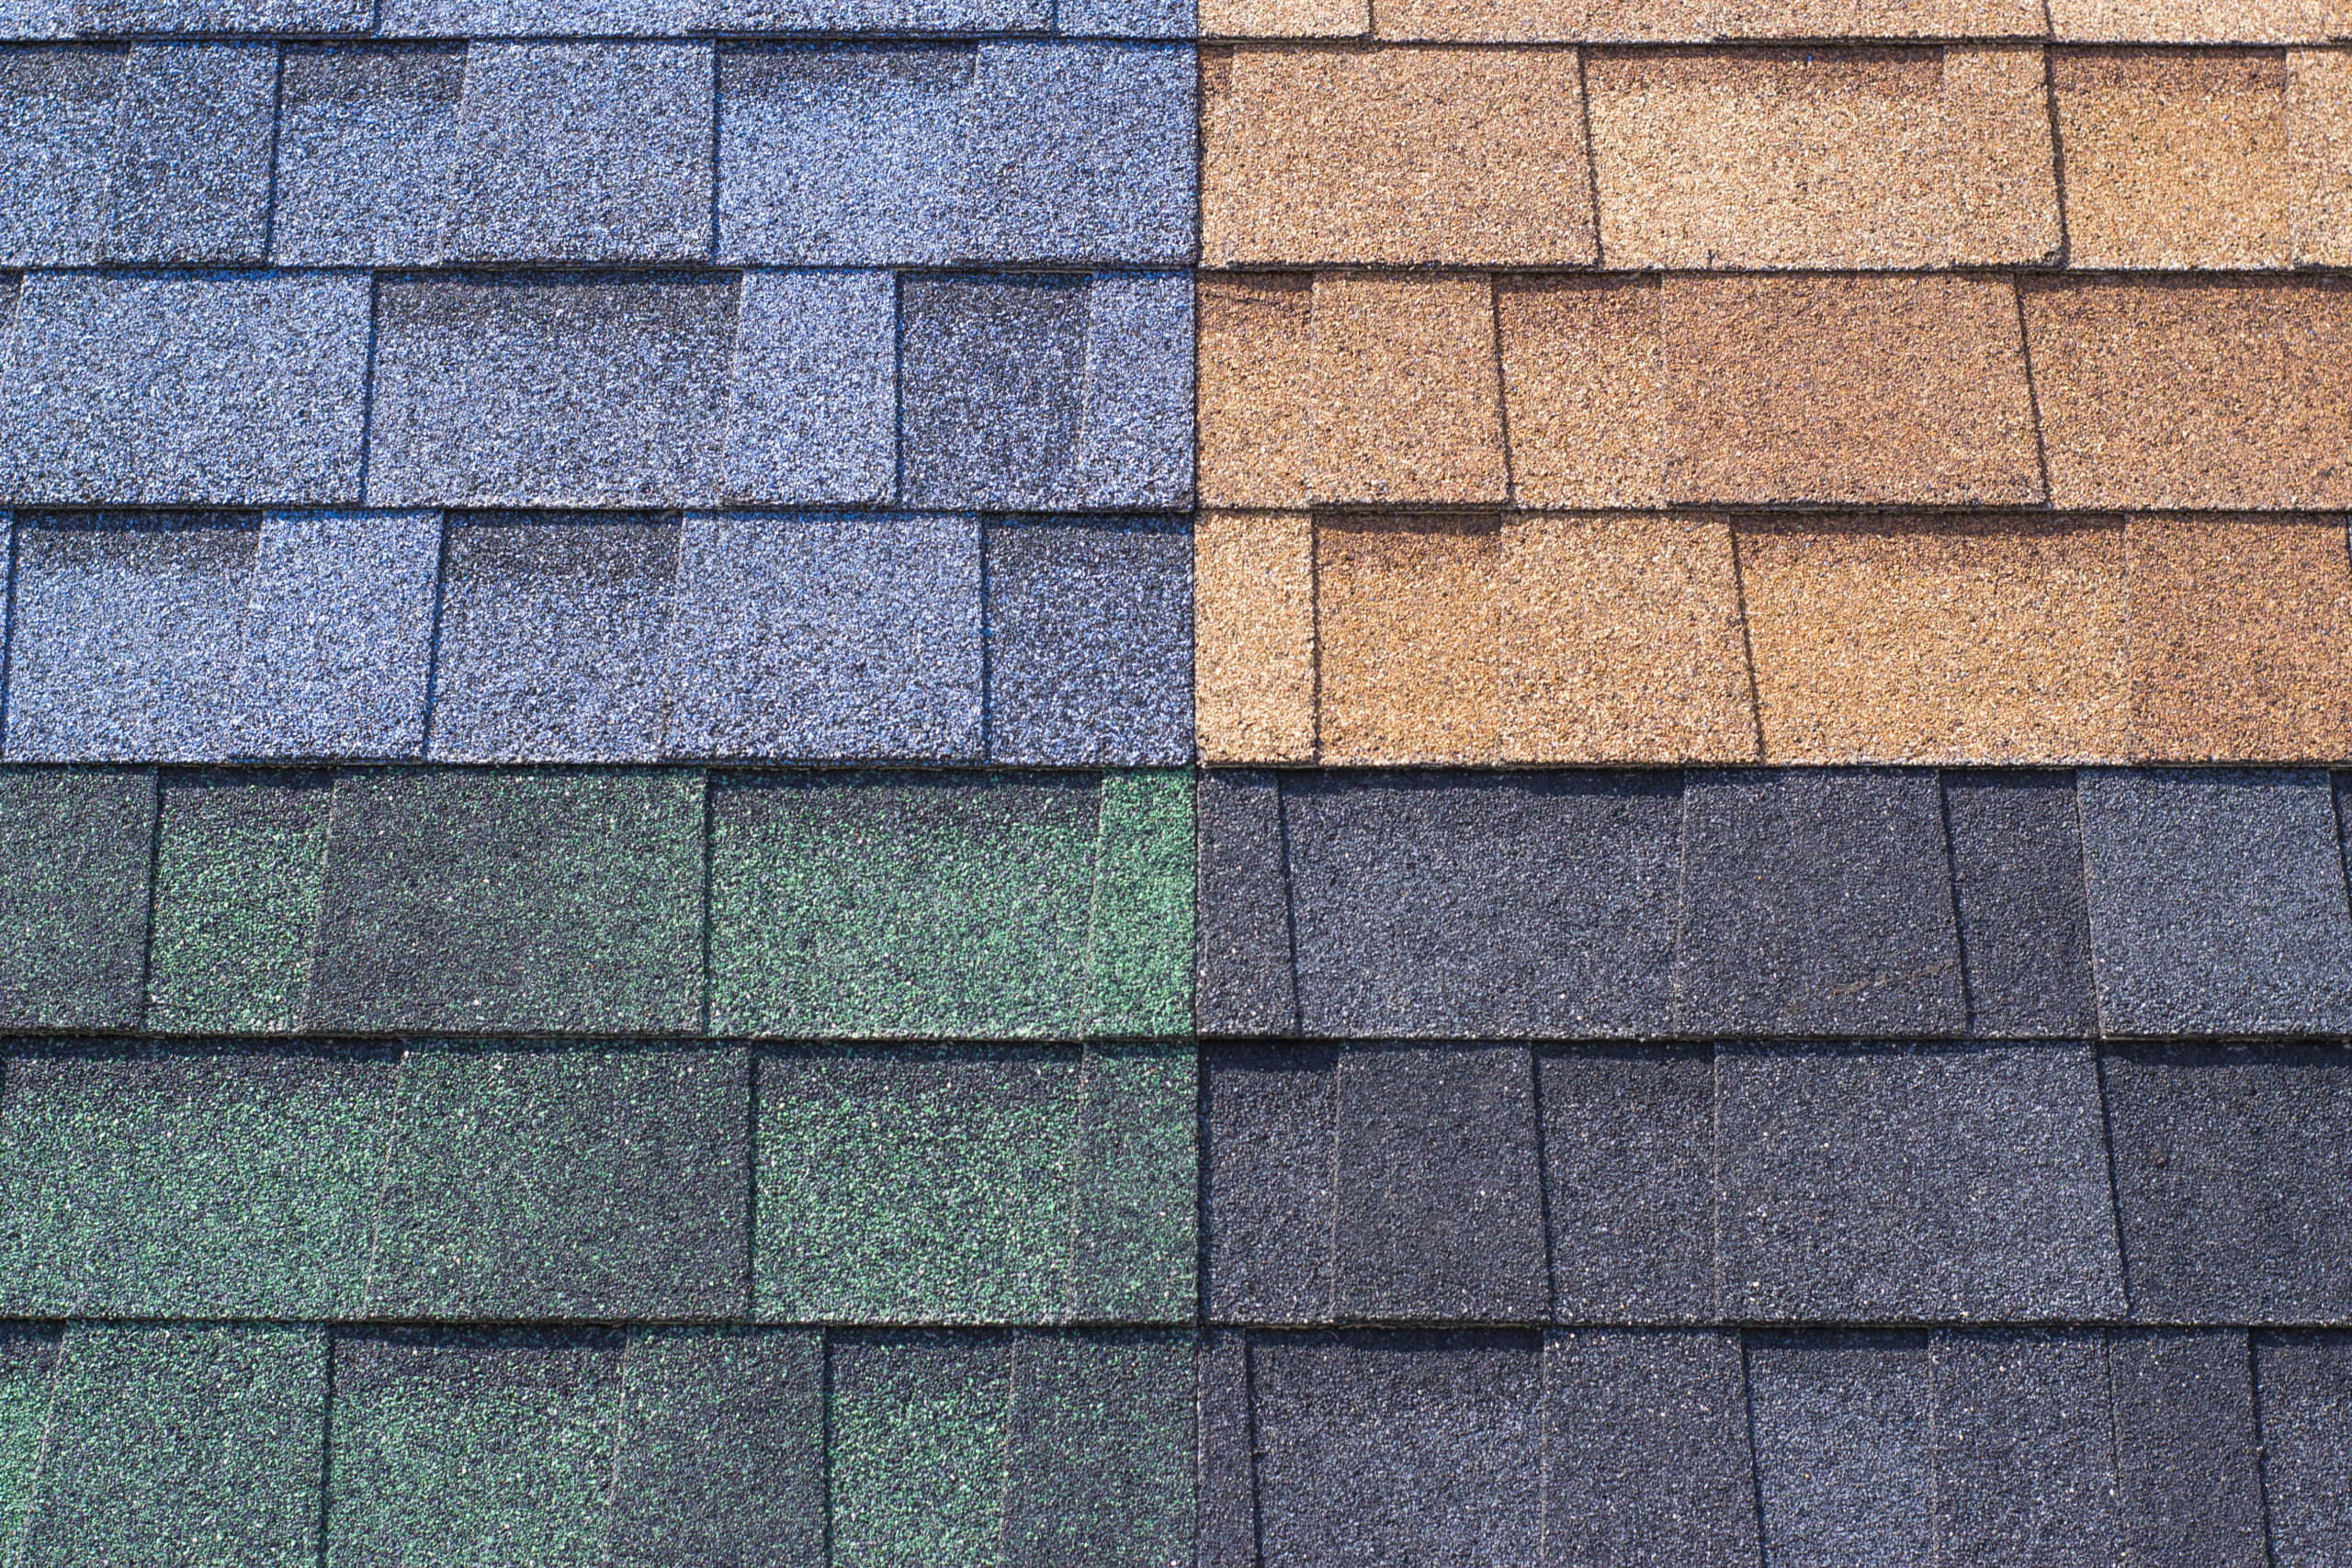 New roof shingles in different colors